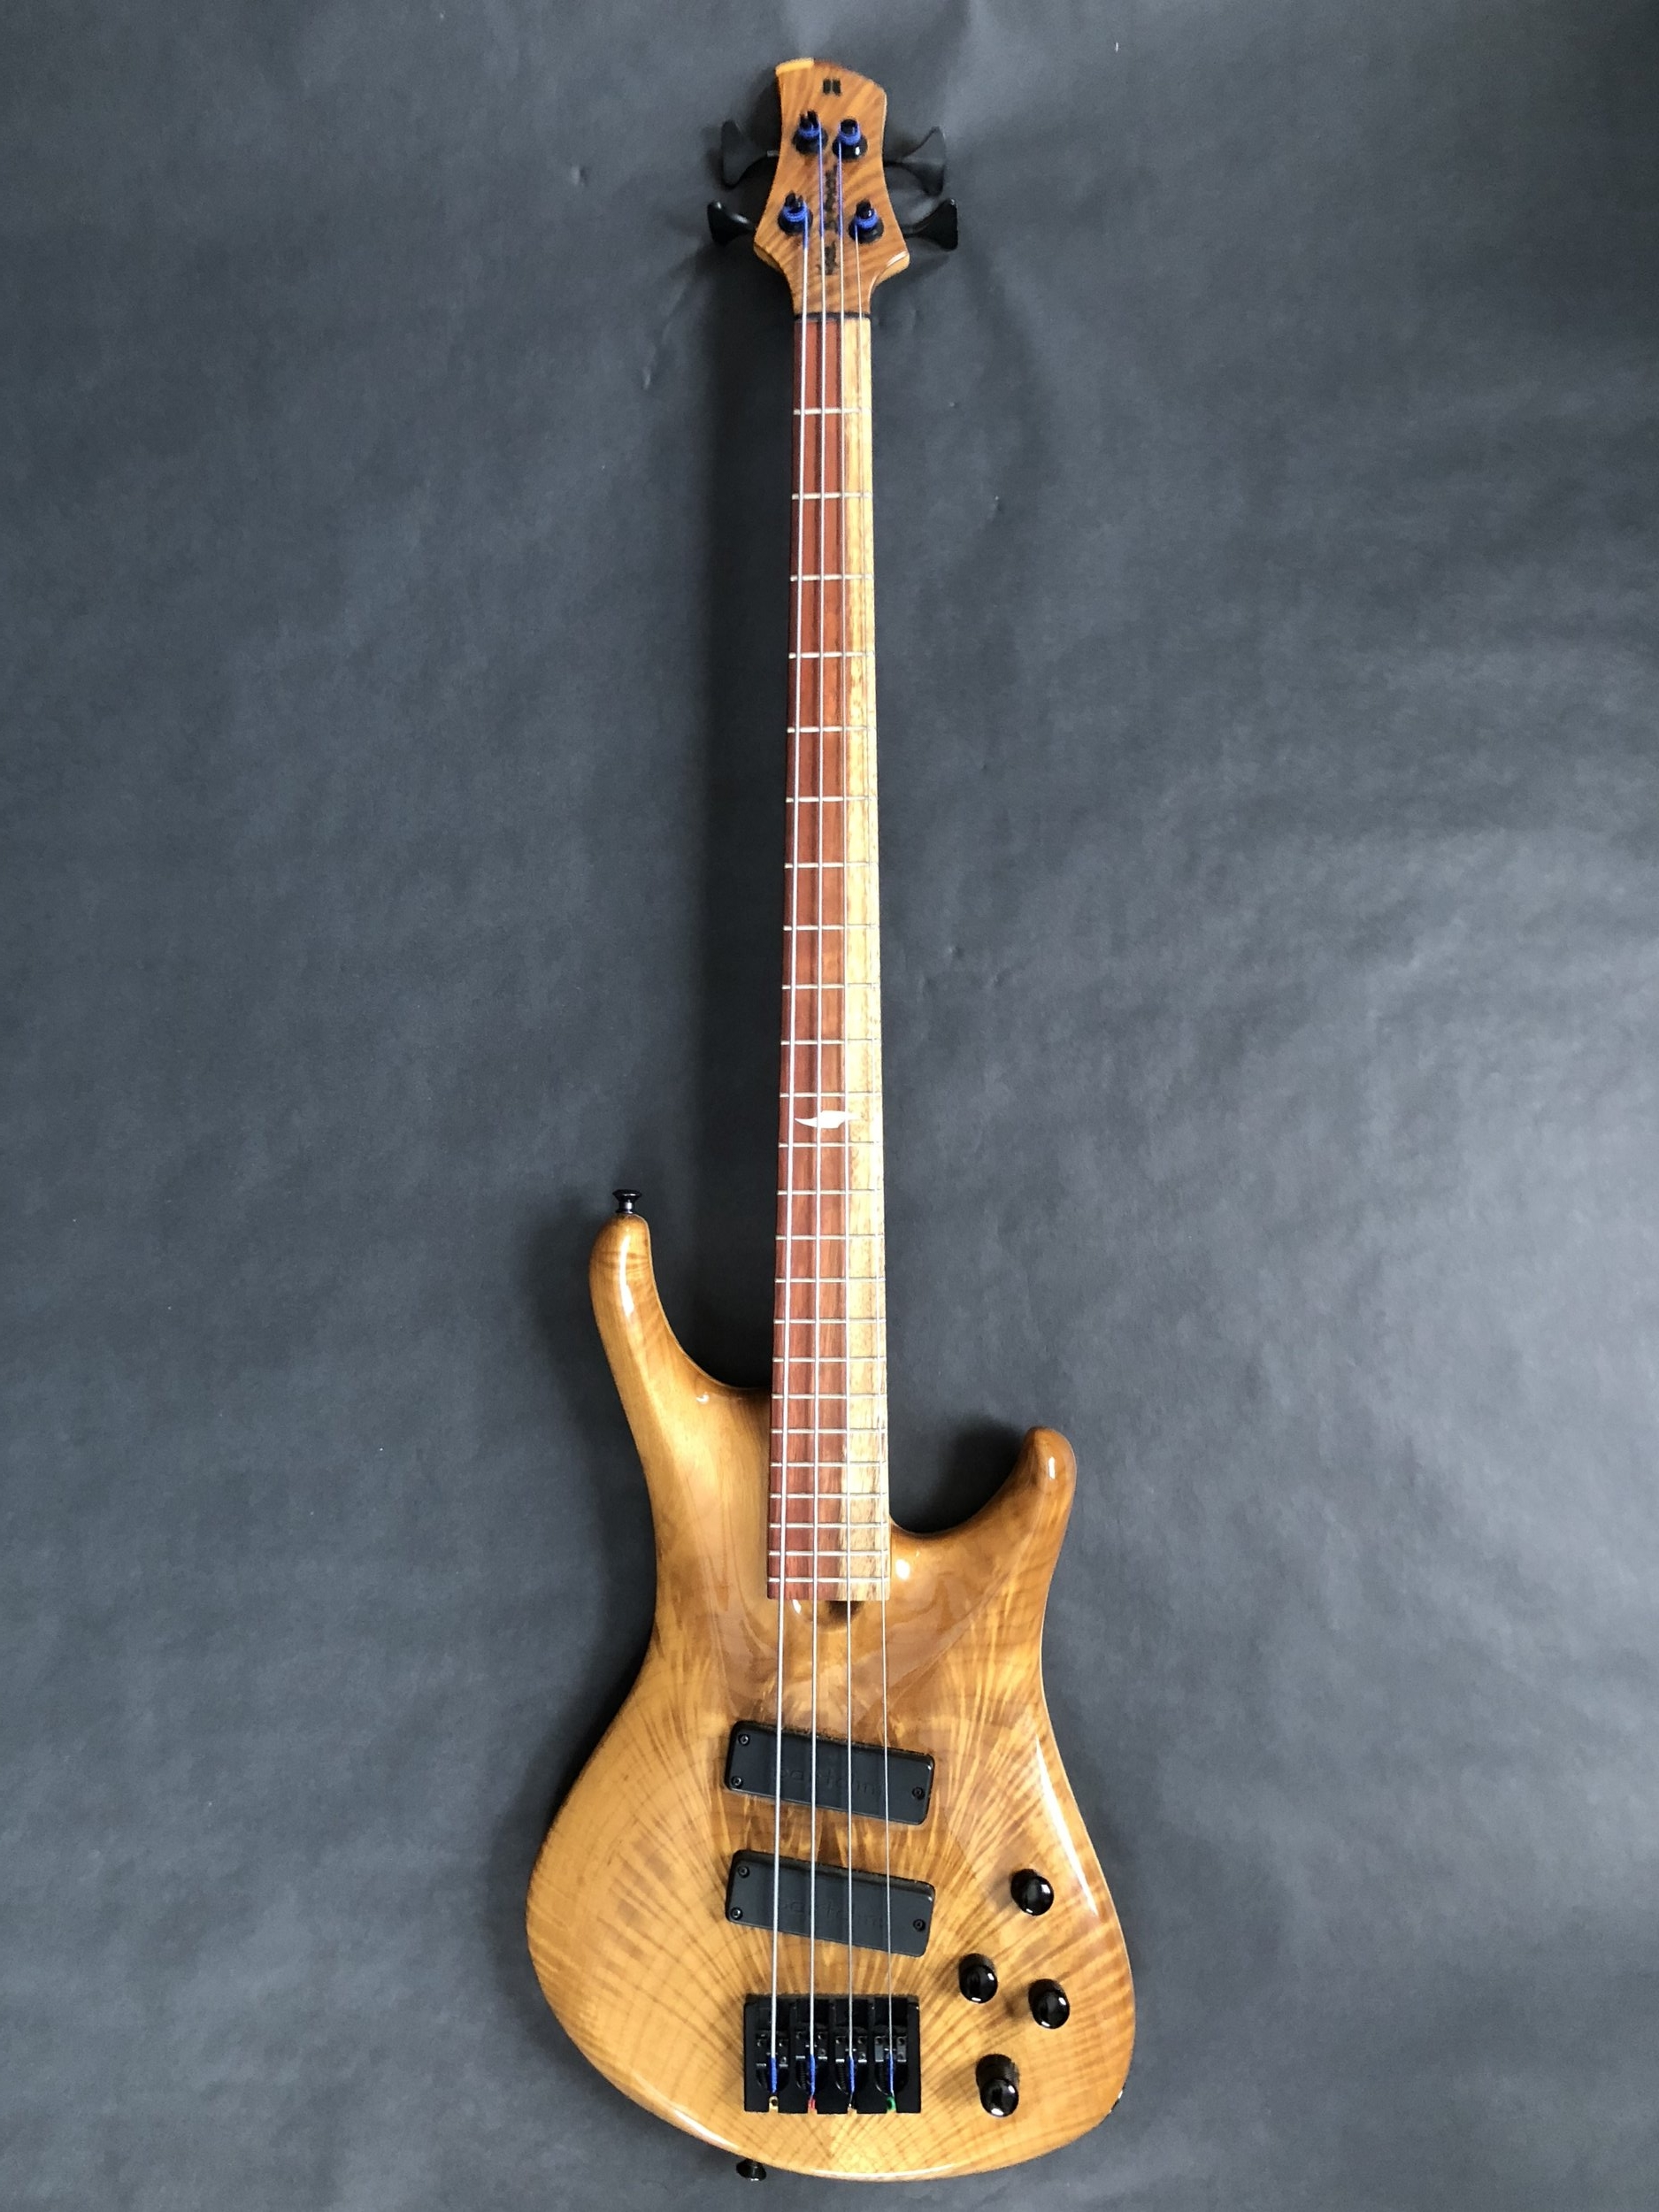 Roscoe Century 3001 Bass with Burled Myrtle Top and Spalted Purplewood Fretboard